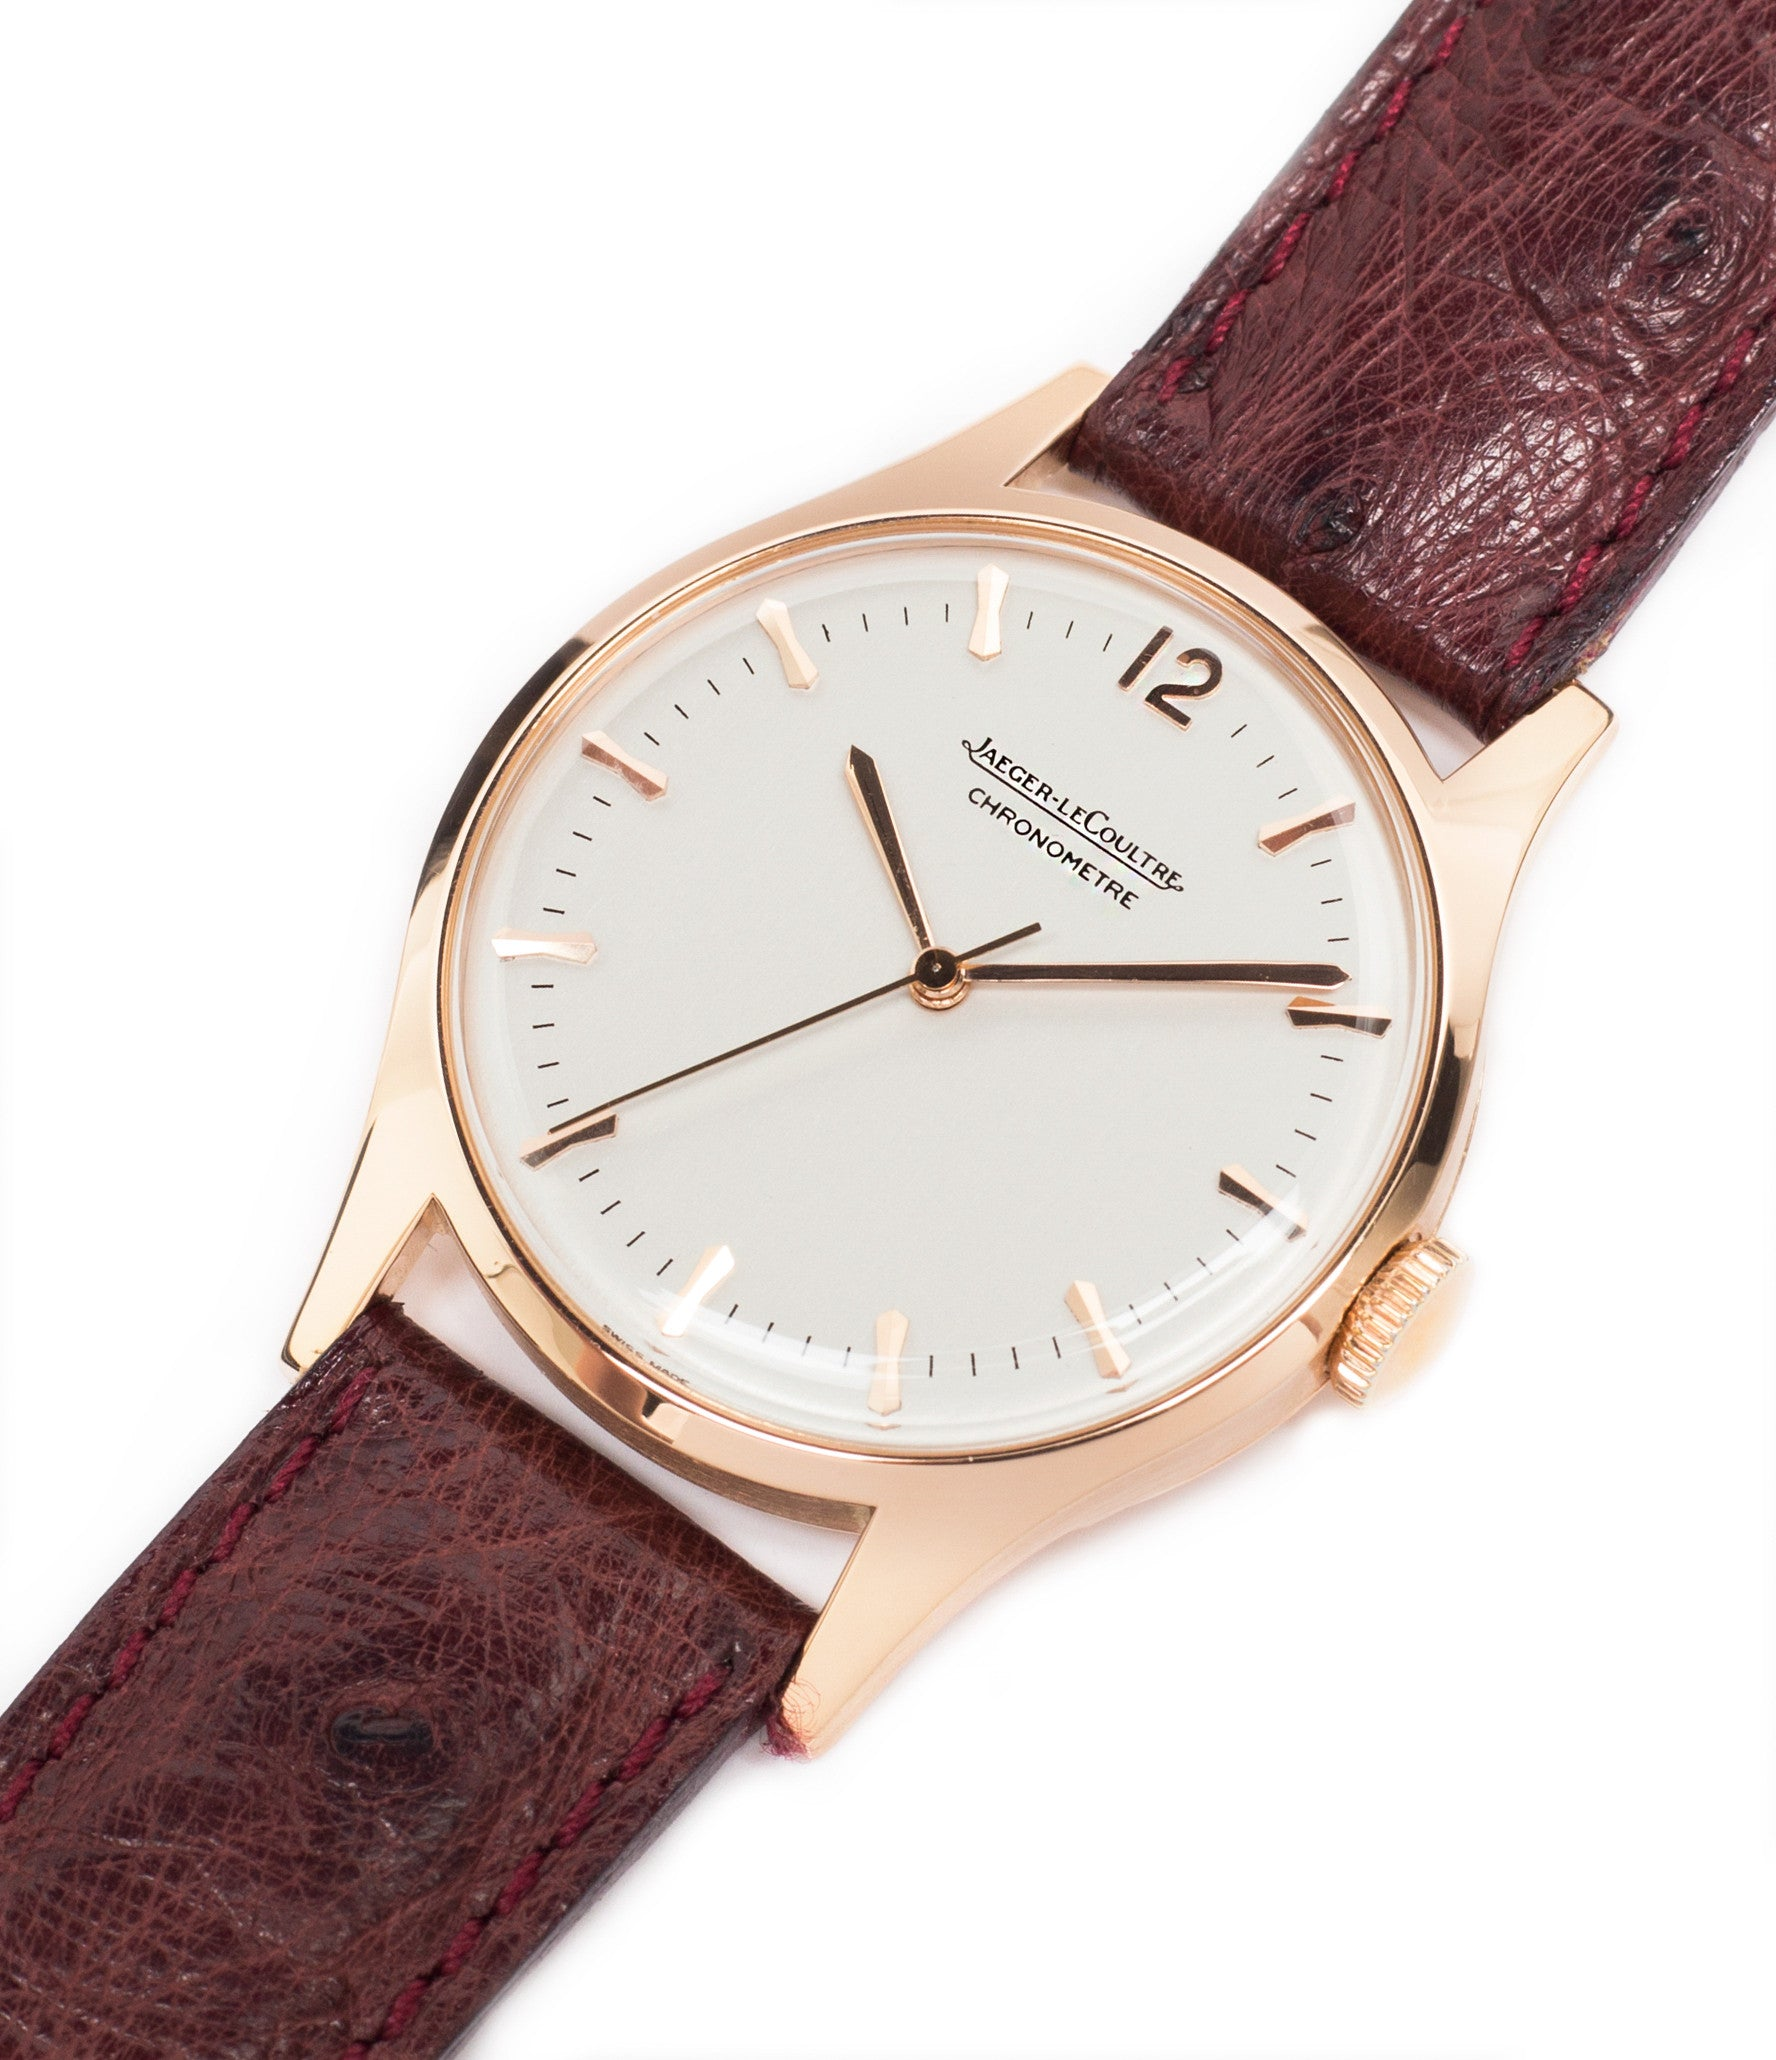 for sale Jaeger-LeCoultre Geophysic Luxe 2985 rose gold rare vintage watch online for sale at A Collected Man London